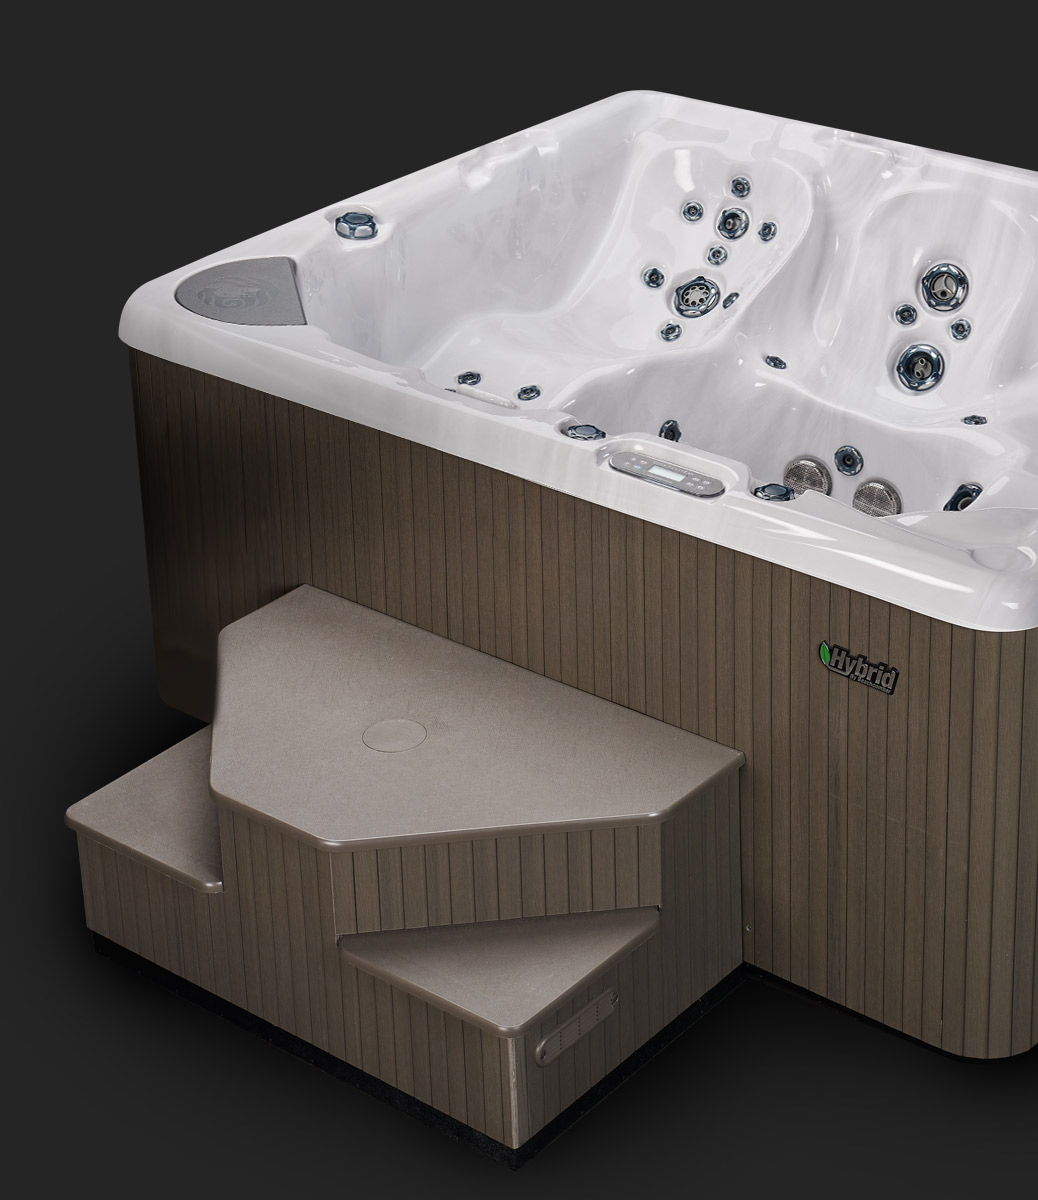 Beachcomber Hot Tubs Modèle 740